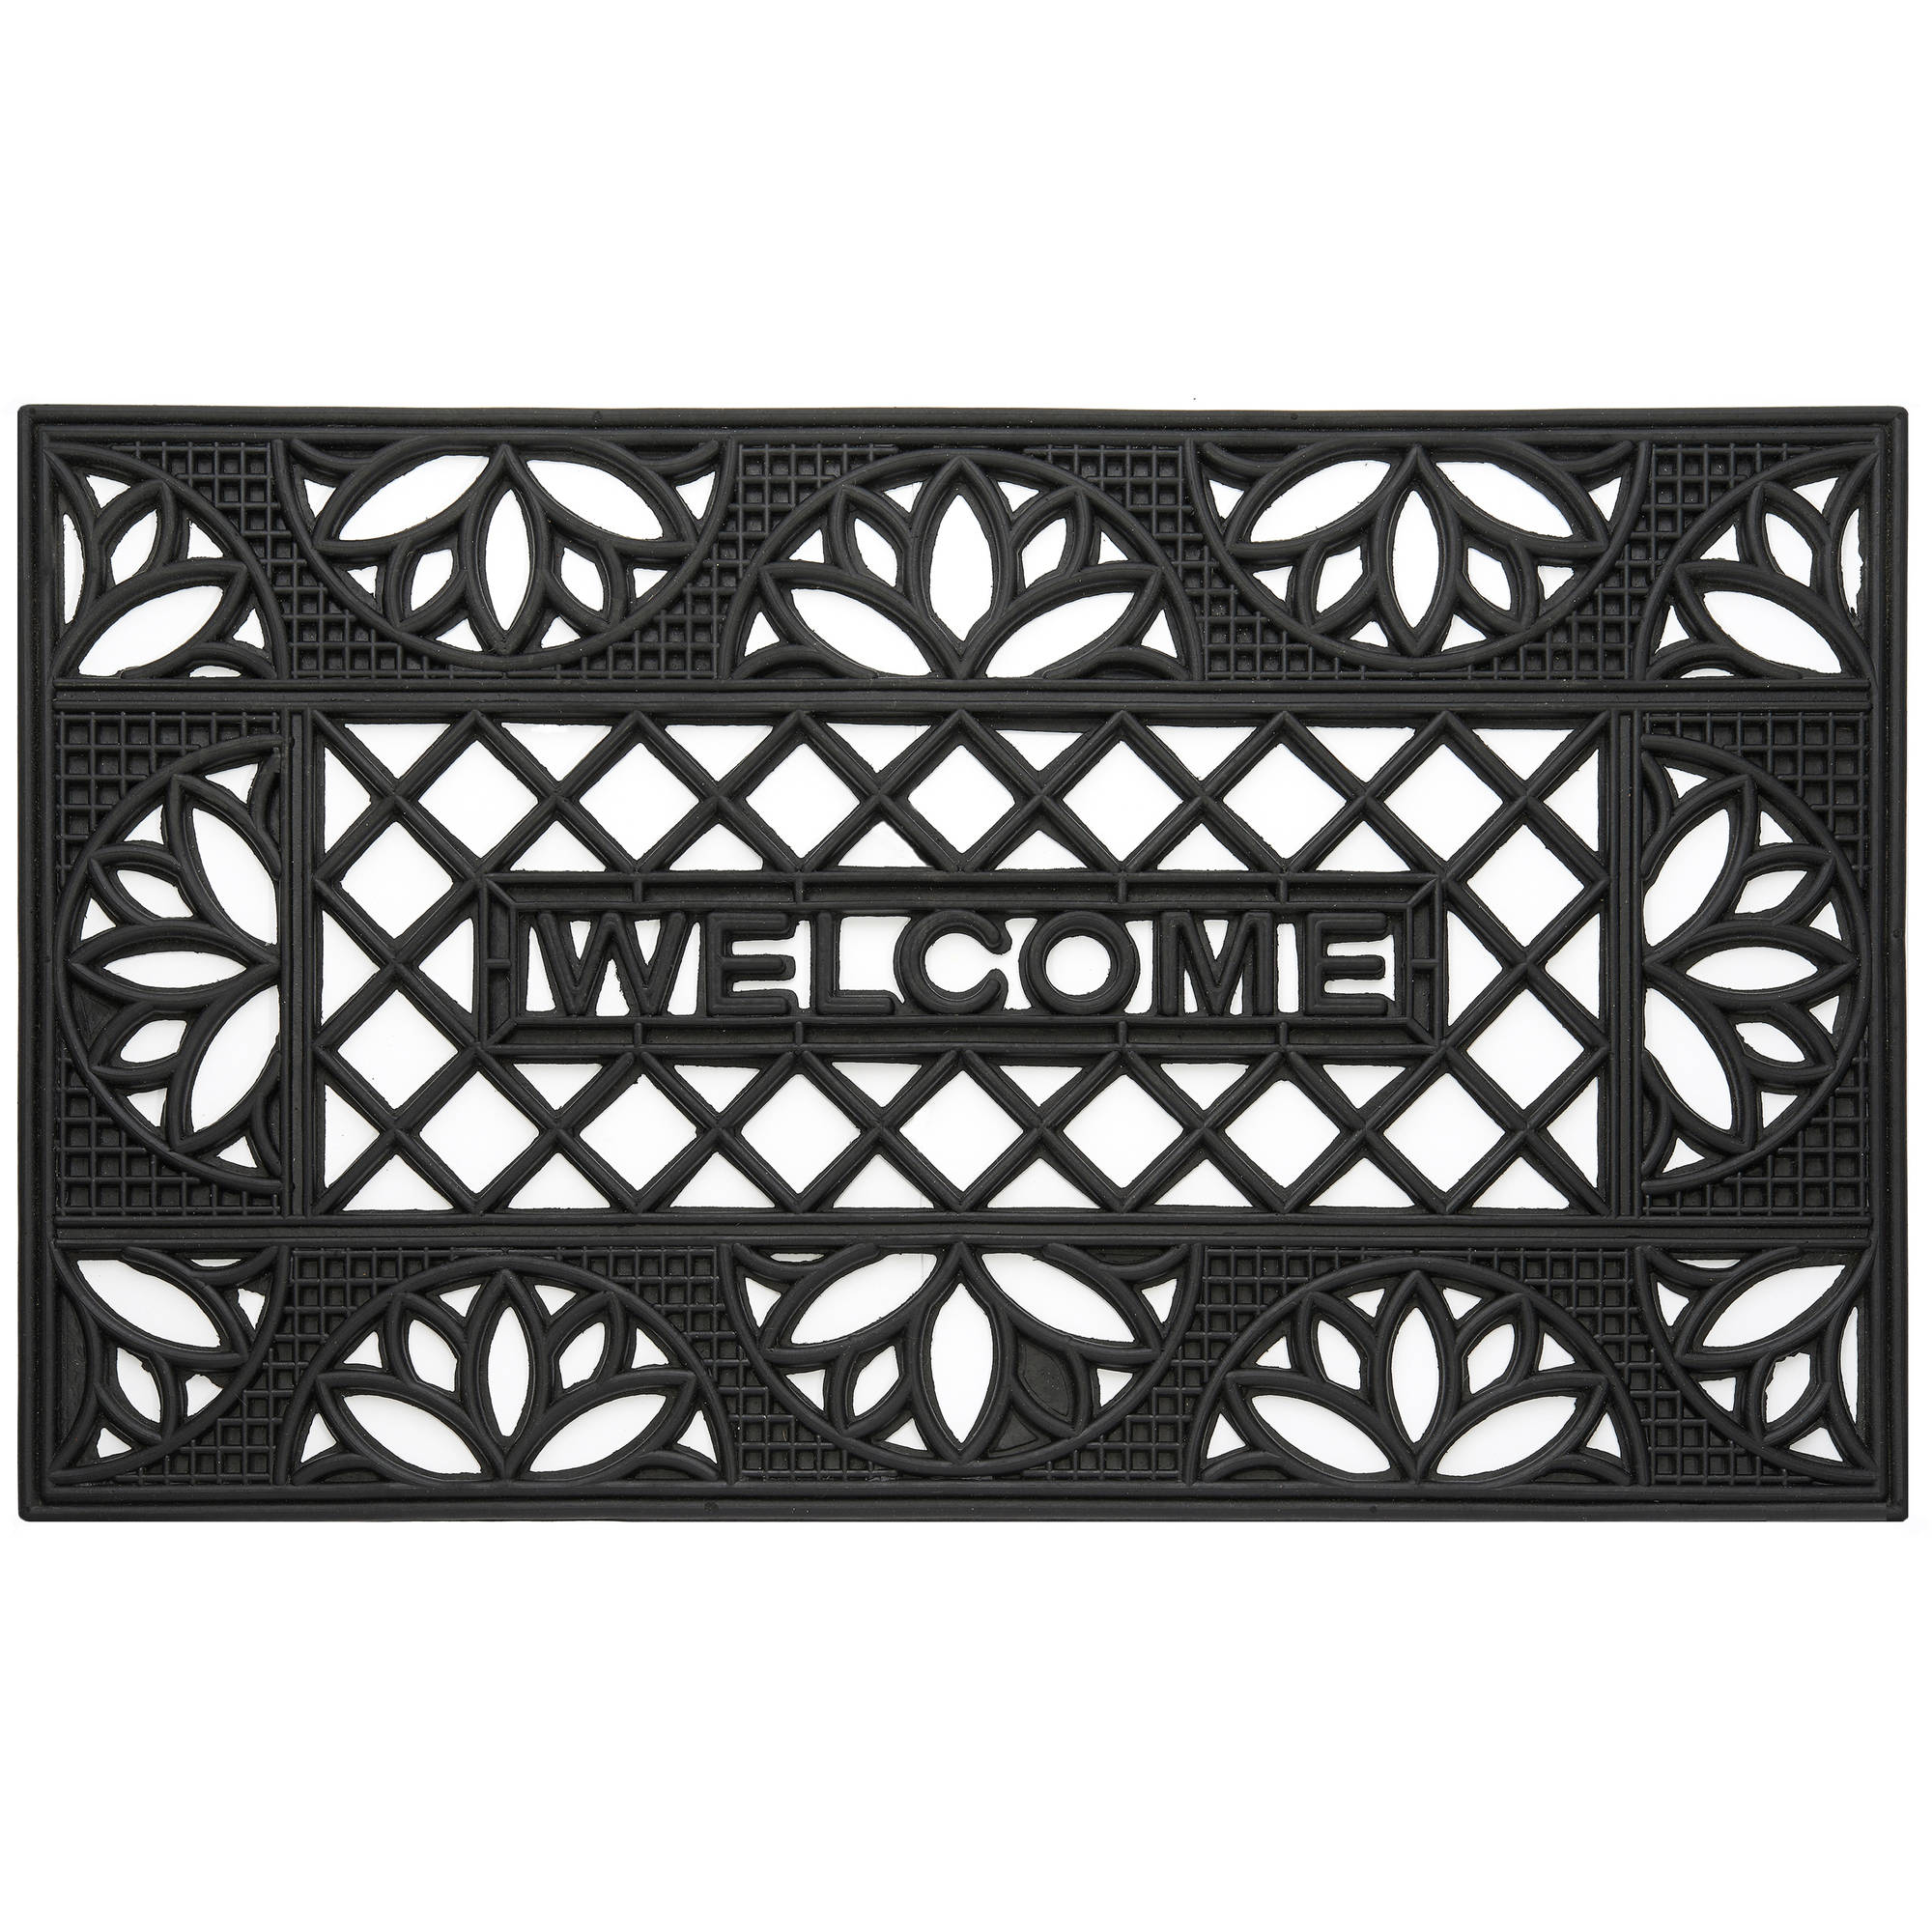 "Wrought Iron Rubber Doormat Tulip, 18"" x 30"""